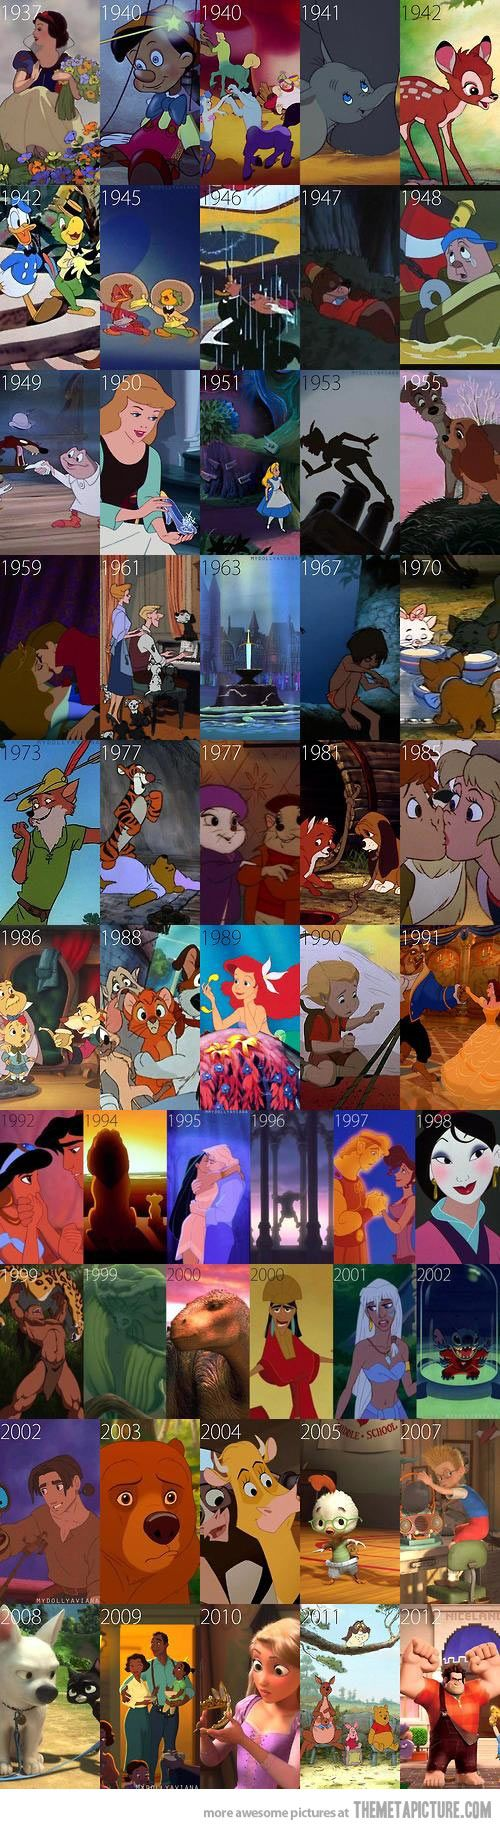 Disney Animated Movies From 1937 to 2012…